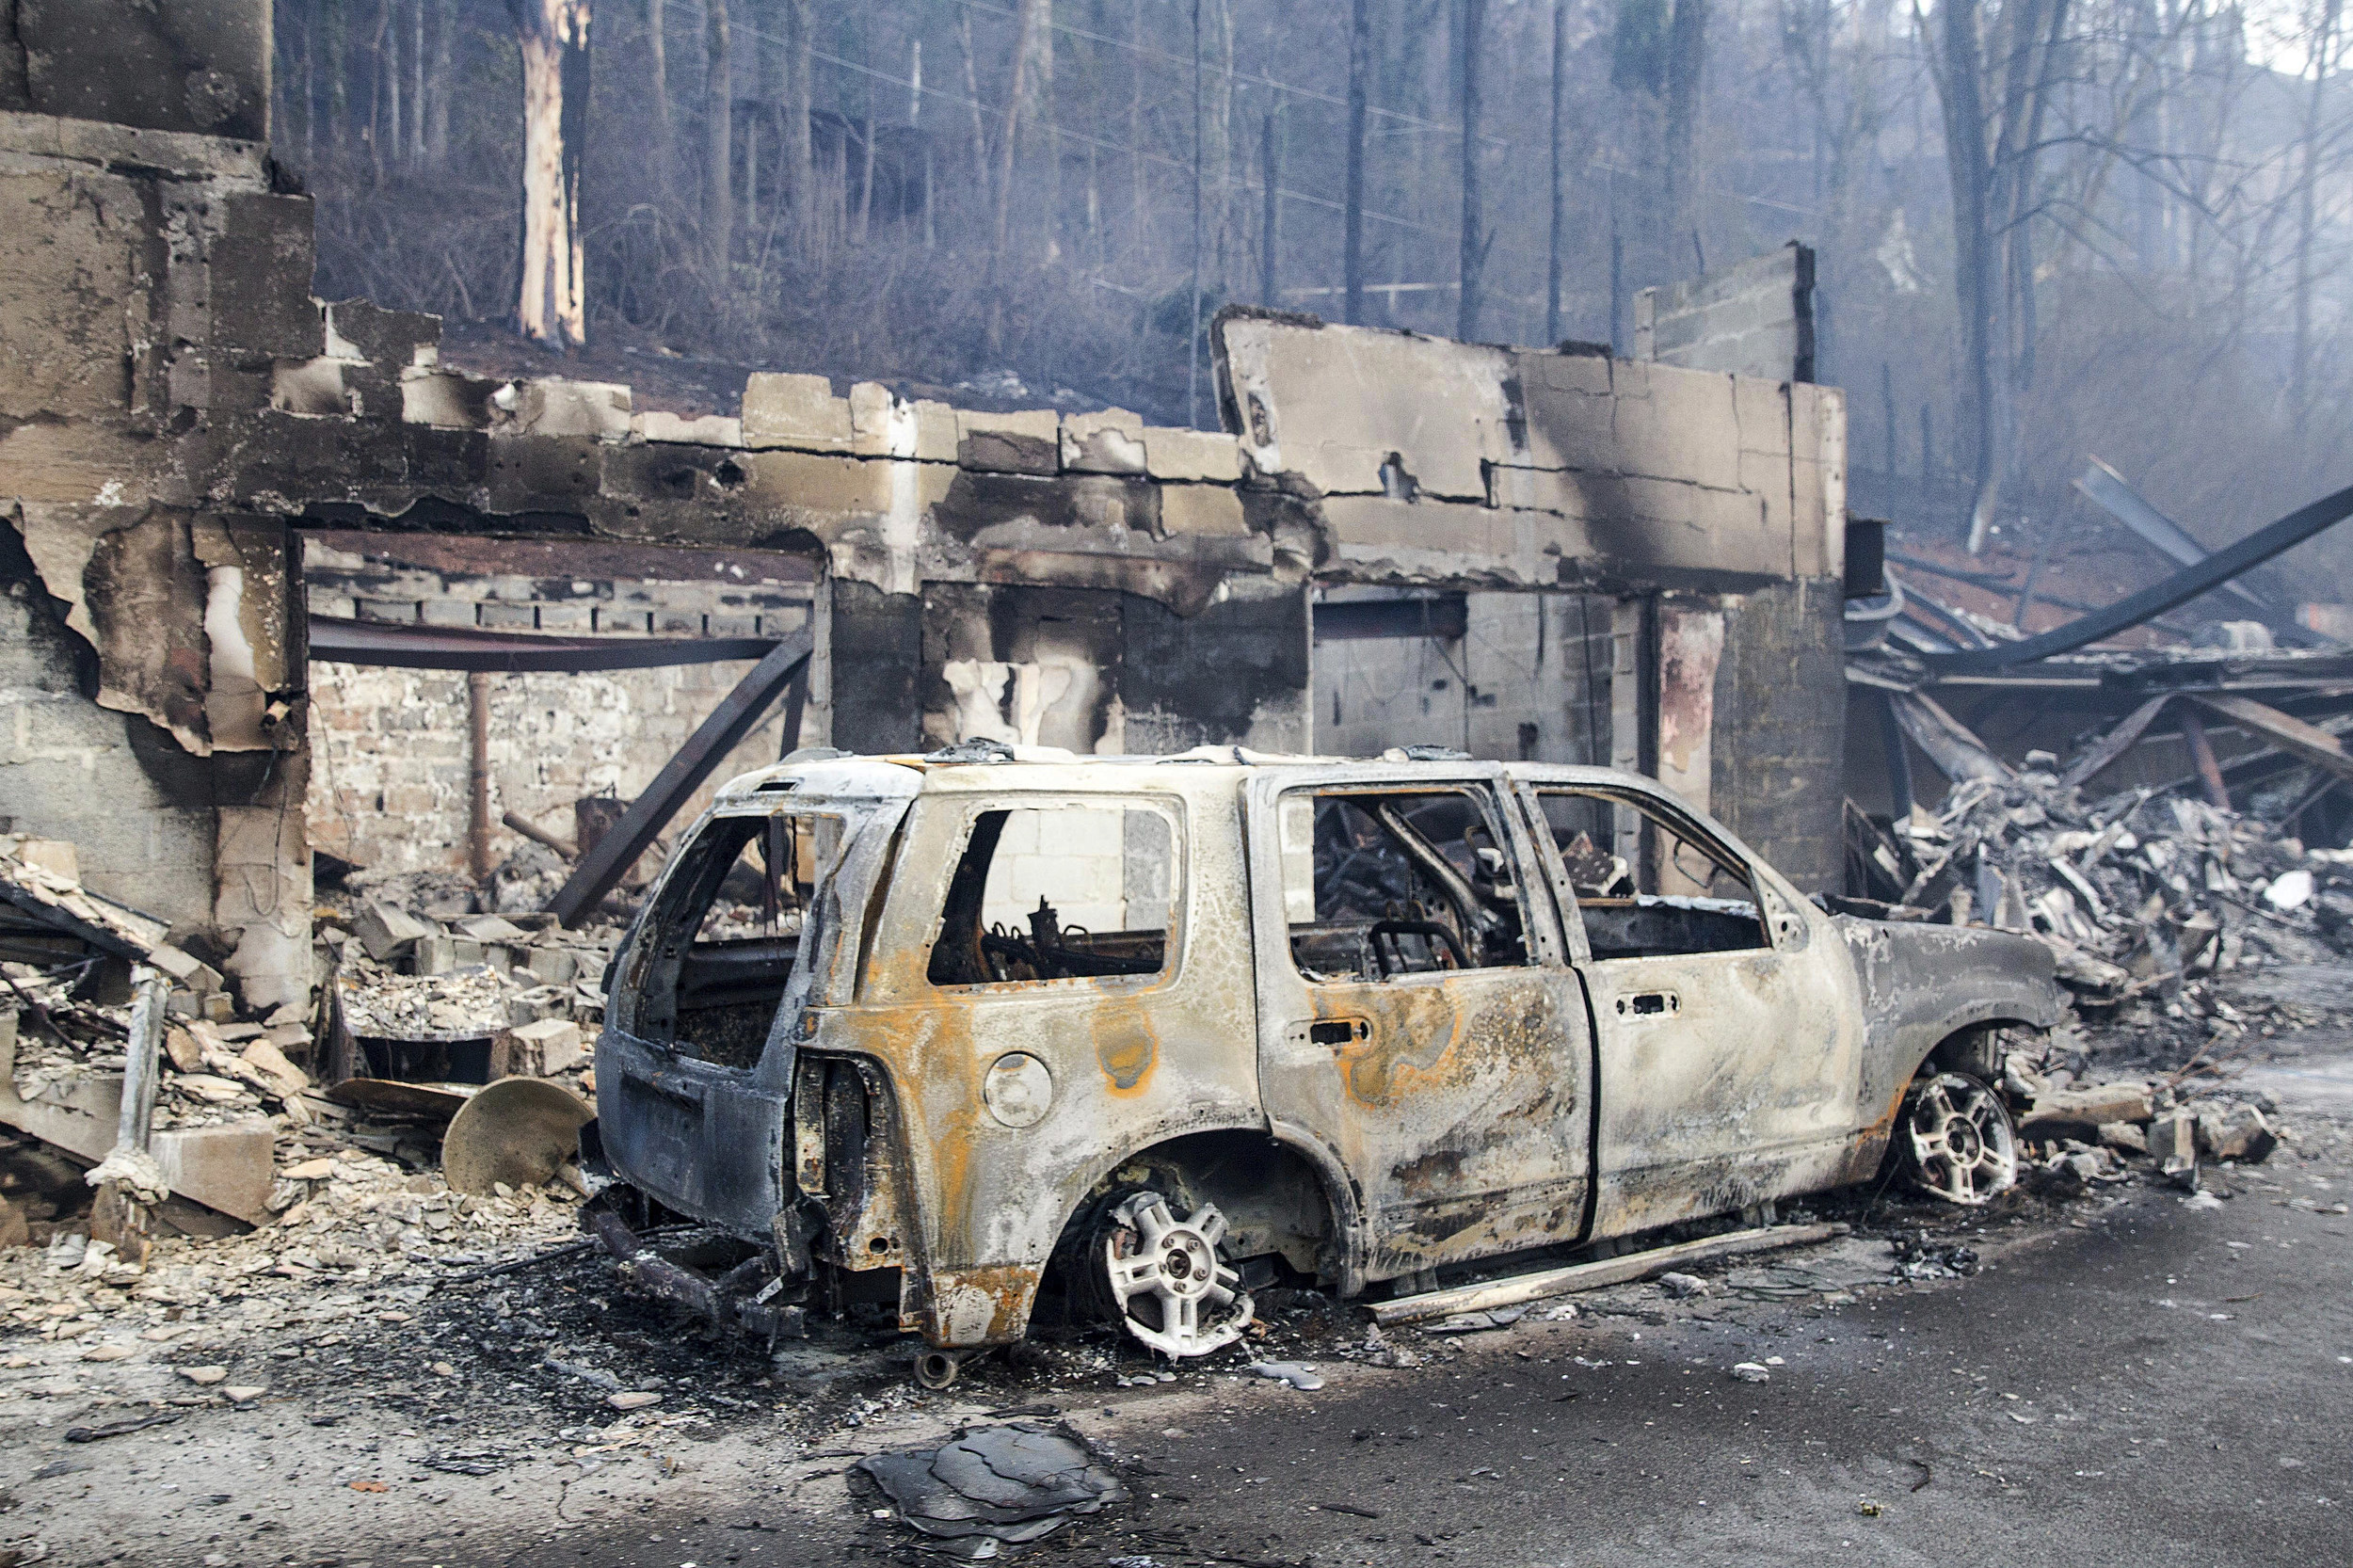 Dolly Parton sets up fund for wildfire victims